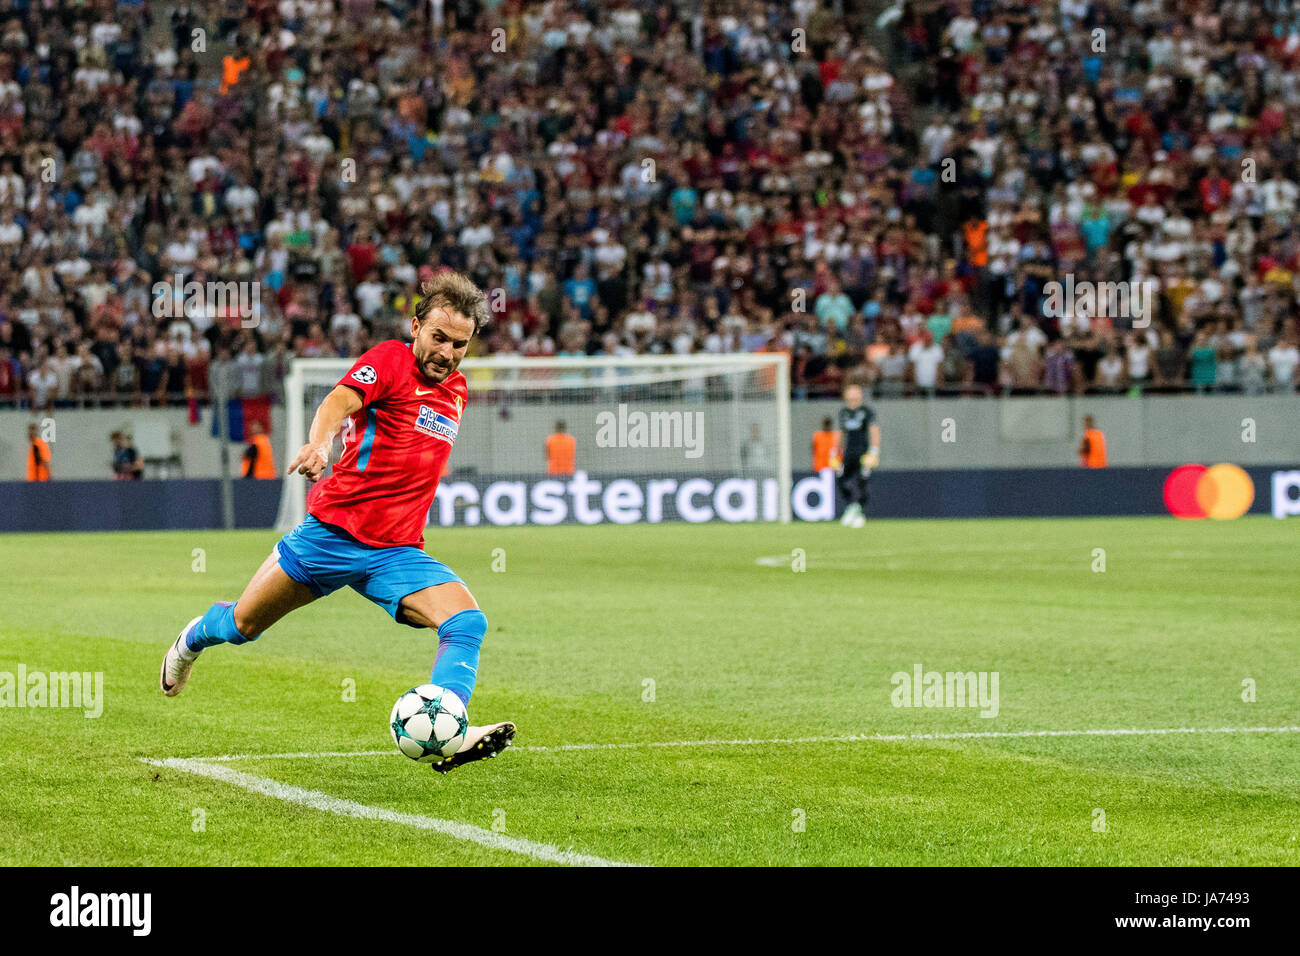 August 23, 2017: Filipe Teixeira #80 of FCSB Bucharest   during the UEFA Champions League 2017-2018, Play-Offs 2nd - Stock Image